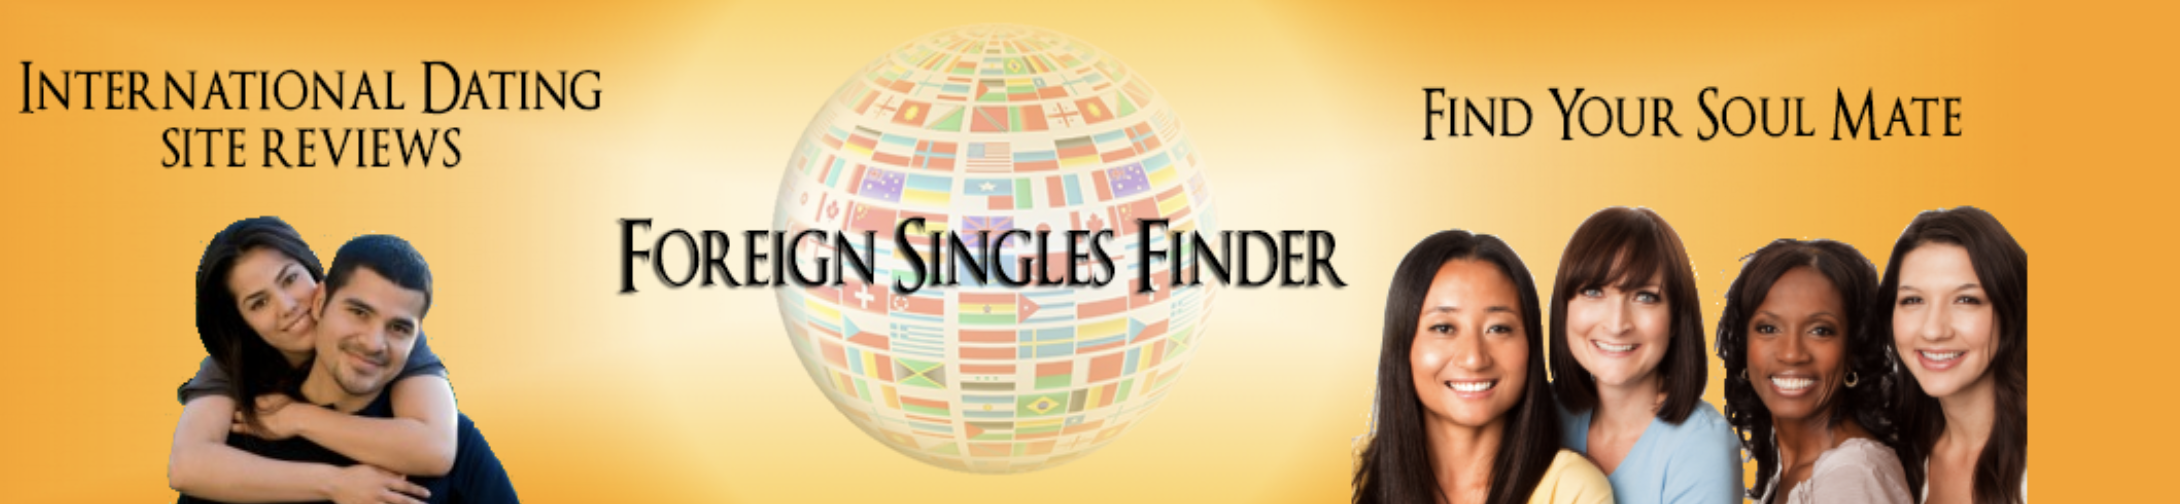 European dating site reviews